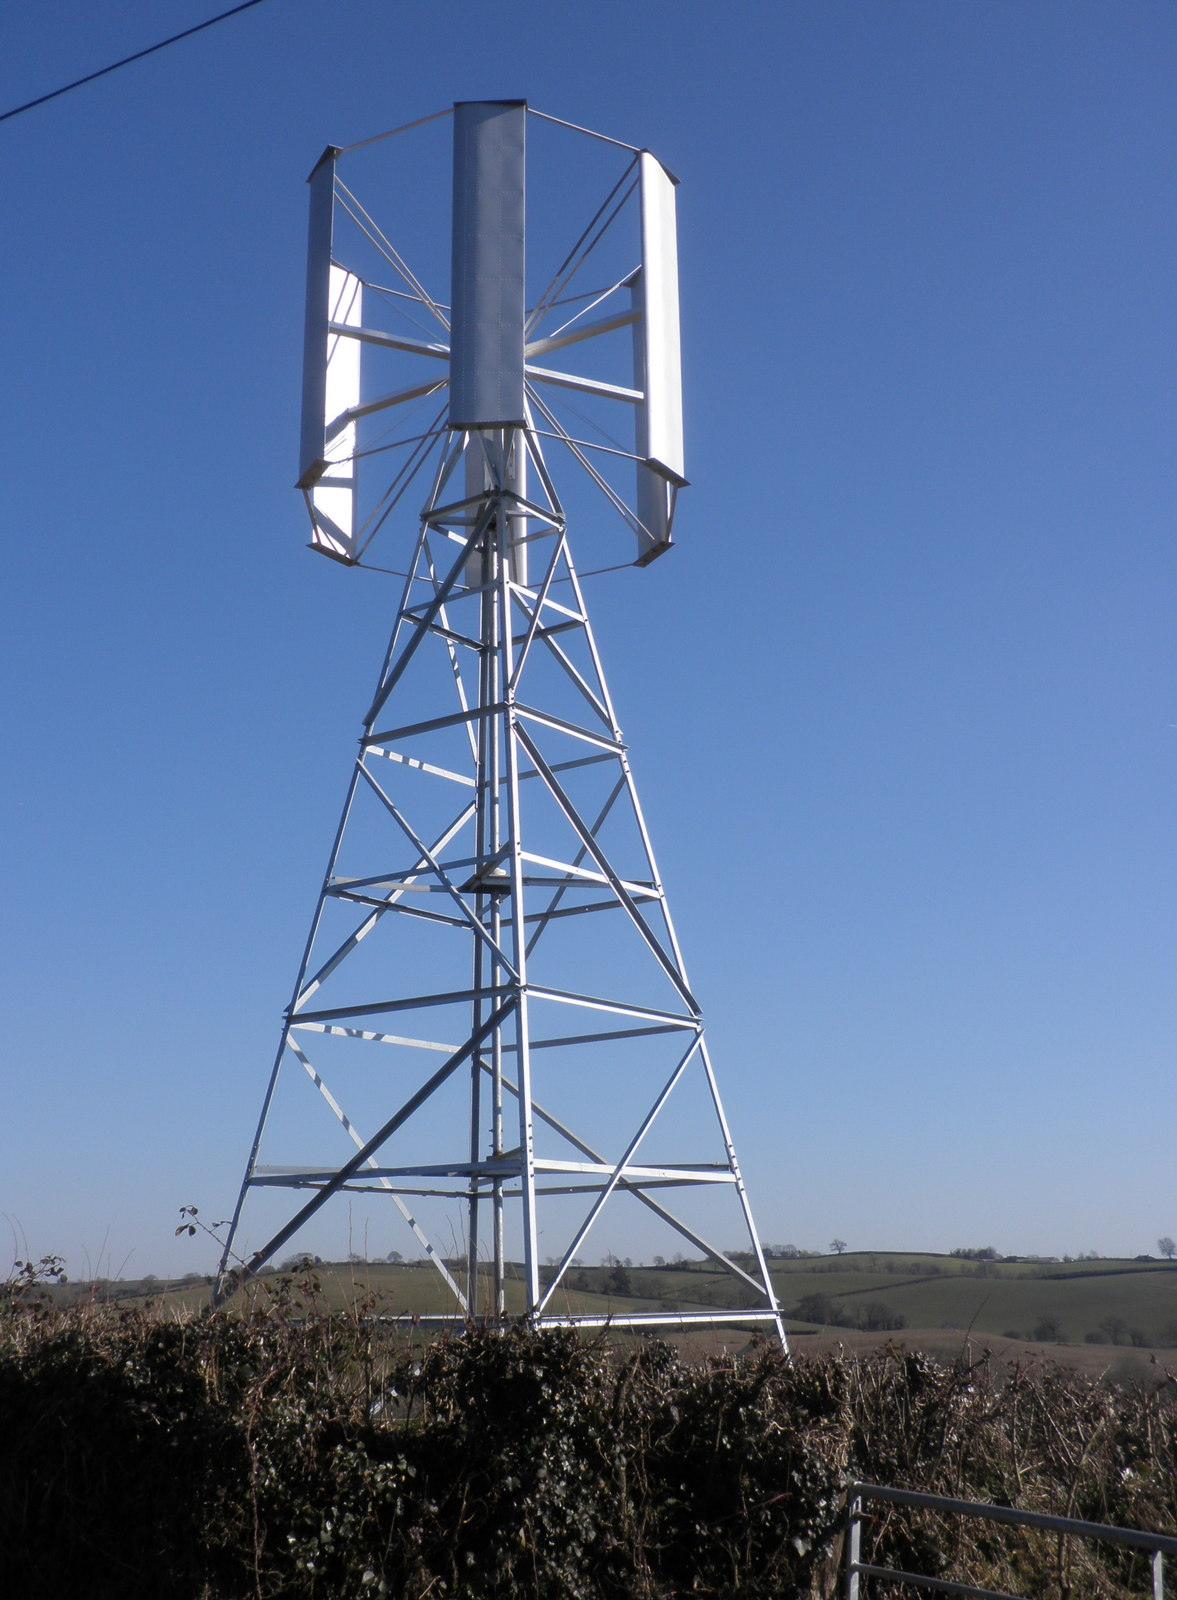 File:Private wind-turbine, near Eastington - geograph org uk